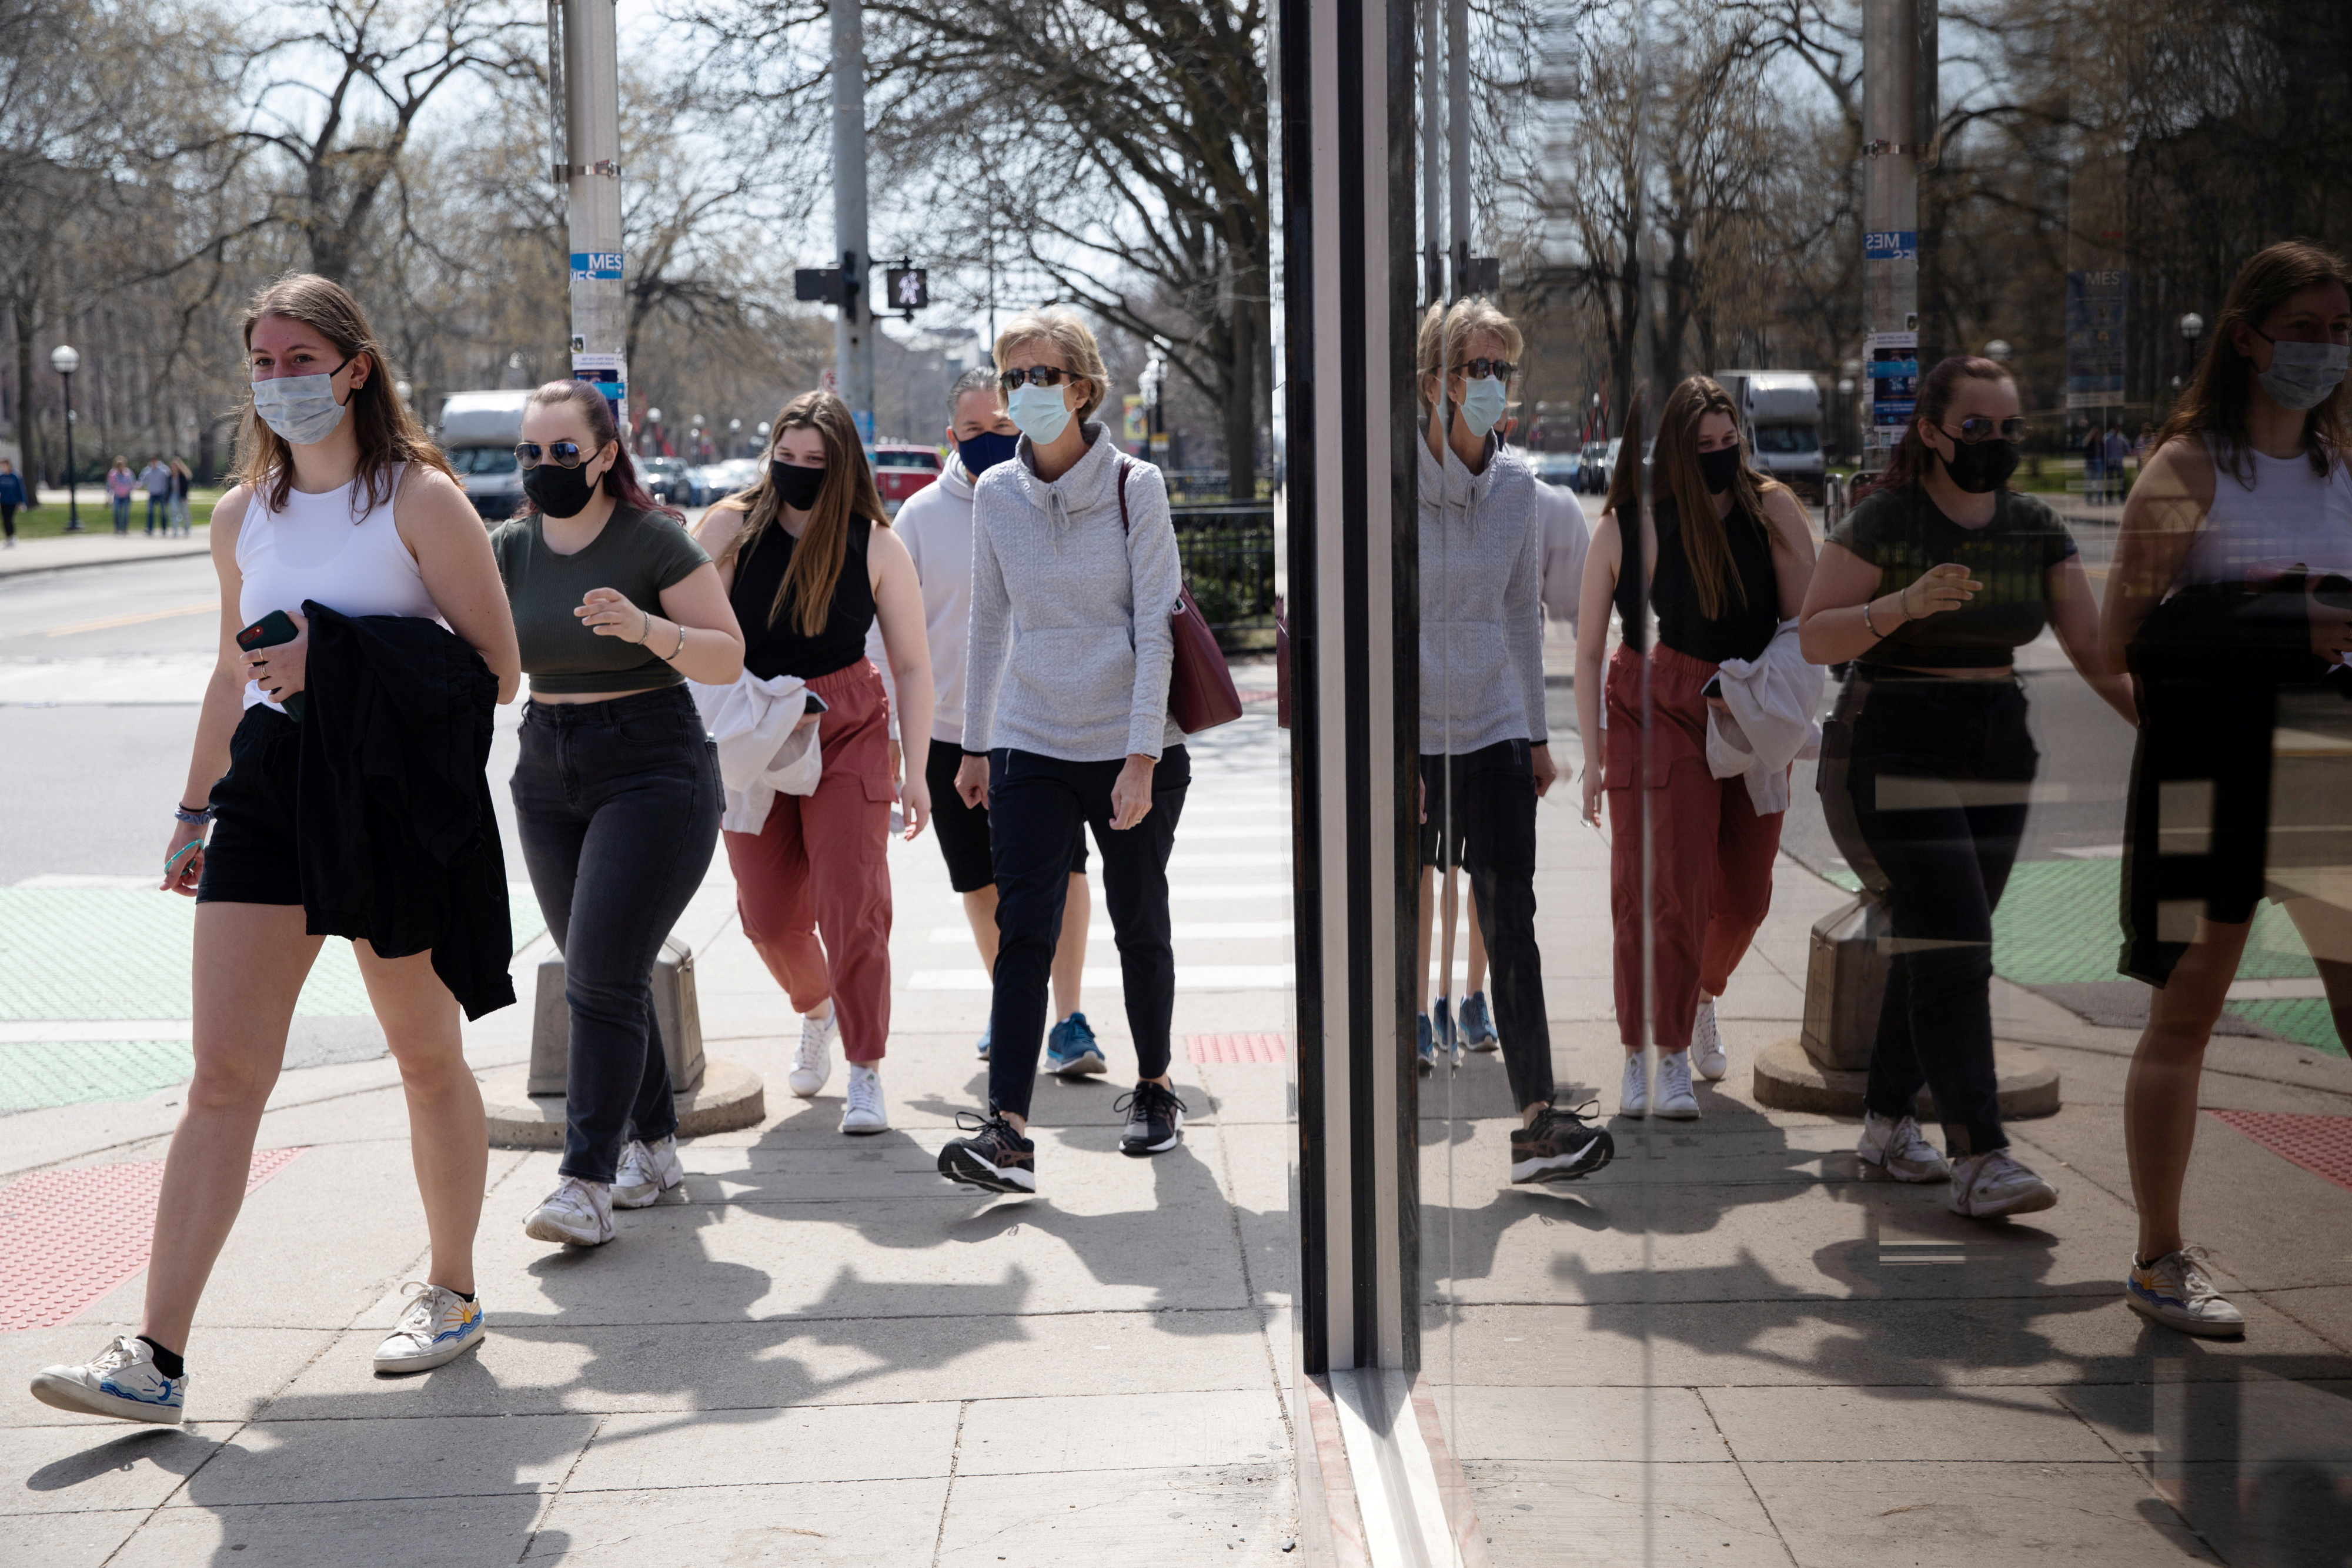 A group of people walk wearing protective masks head to a restaurant as coronavirus disease (COVID-19) restrictions are eased in Ann Arbor, Michigan, U.S., April 4, 2021.  REUTERS/Emily Elconin/File Photo